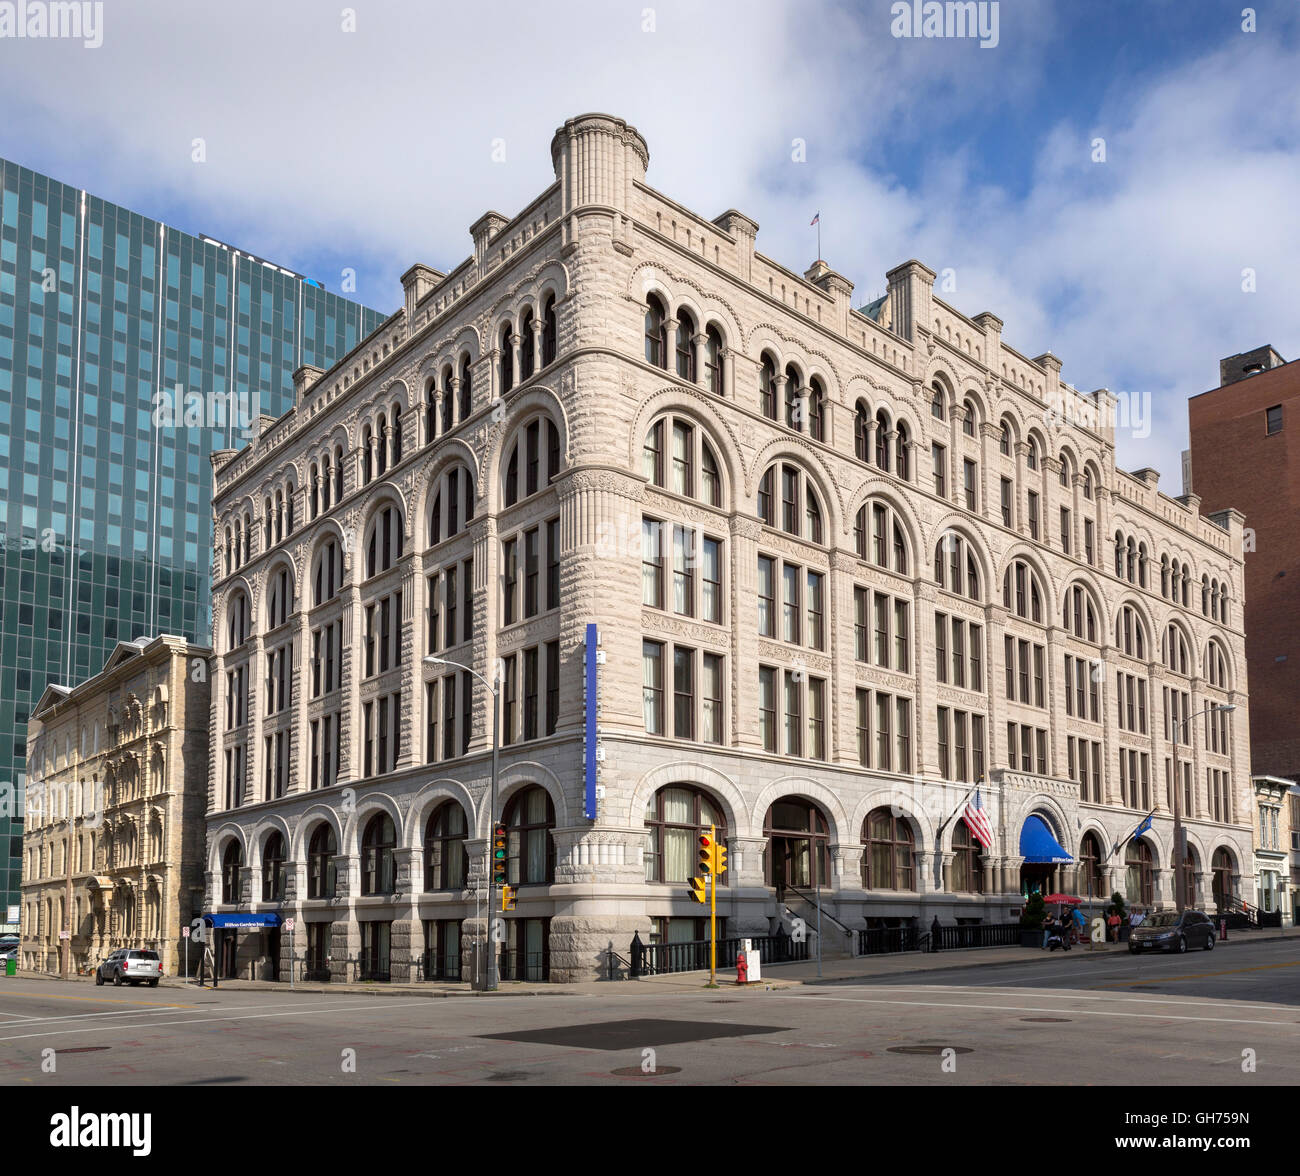 The 1886 Northwestern Mutual Life Insurance Company Home Office in Milwaukee, Wisconsin. - Stock Image